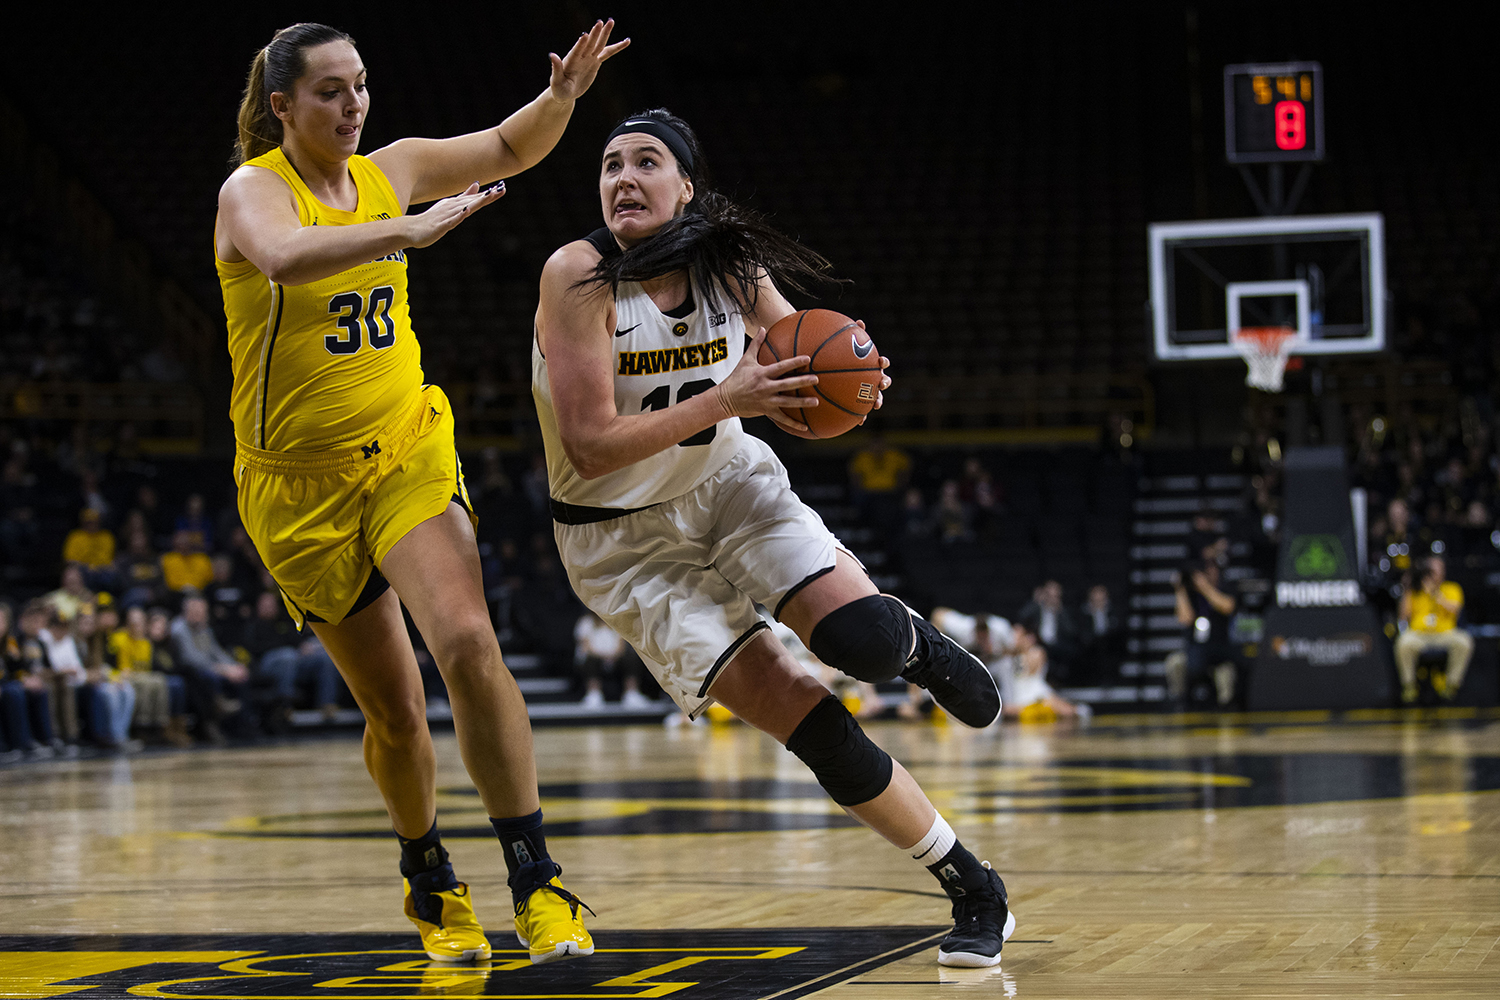 Iowa forward Megan Gustafson drives to the basket during the Iowa/Michigan women's basketball game at Carver-Hawkeye Arena on Thursday, January 17, 2018. The Hawkeyes defeated the Wolverines, 75-61.